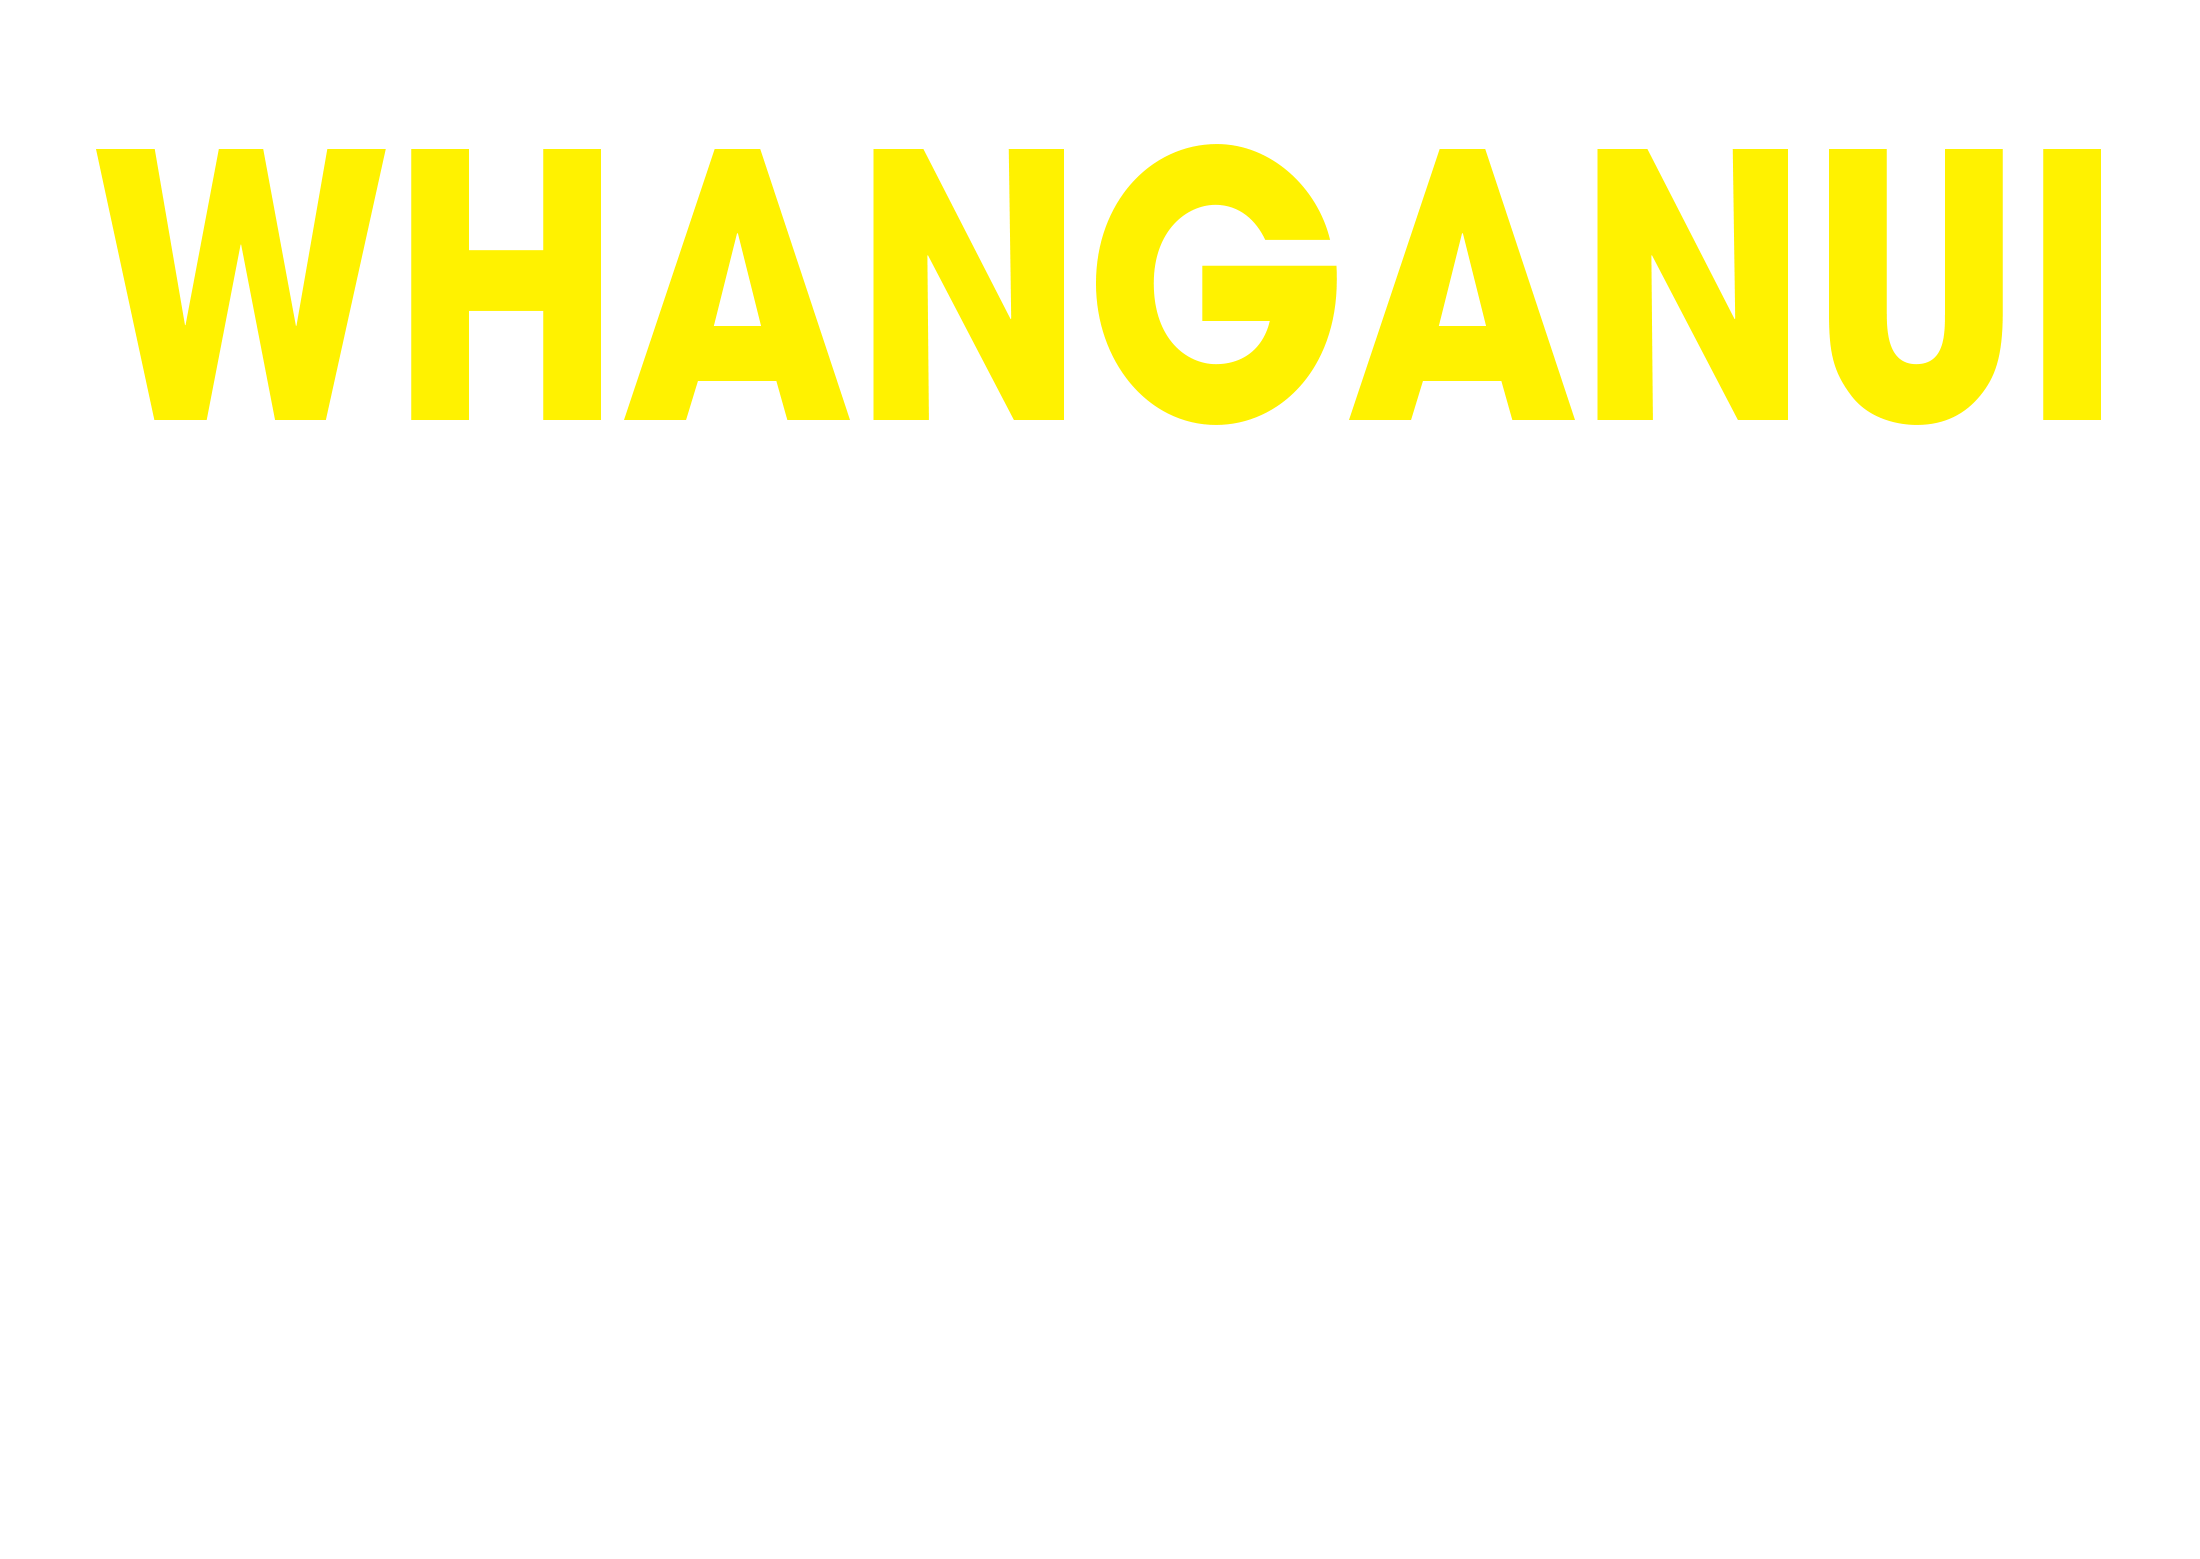 Whanganui Boating Centre